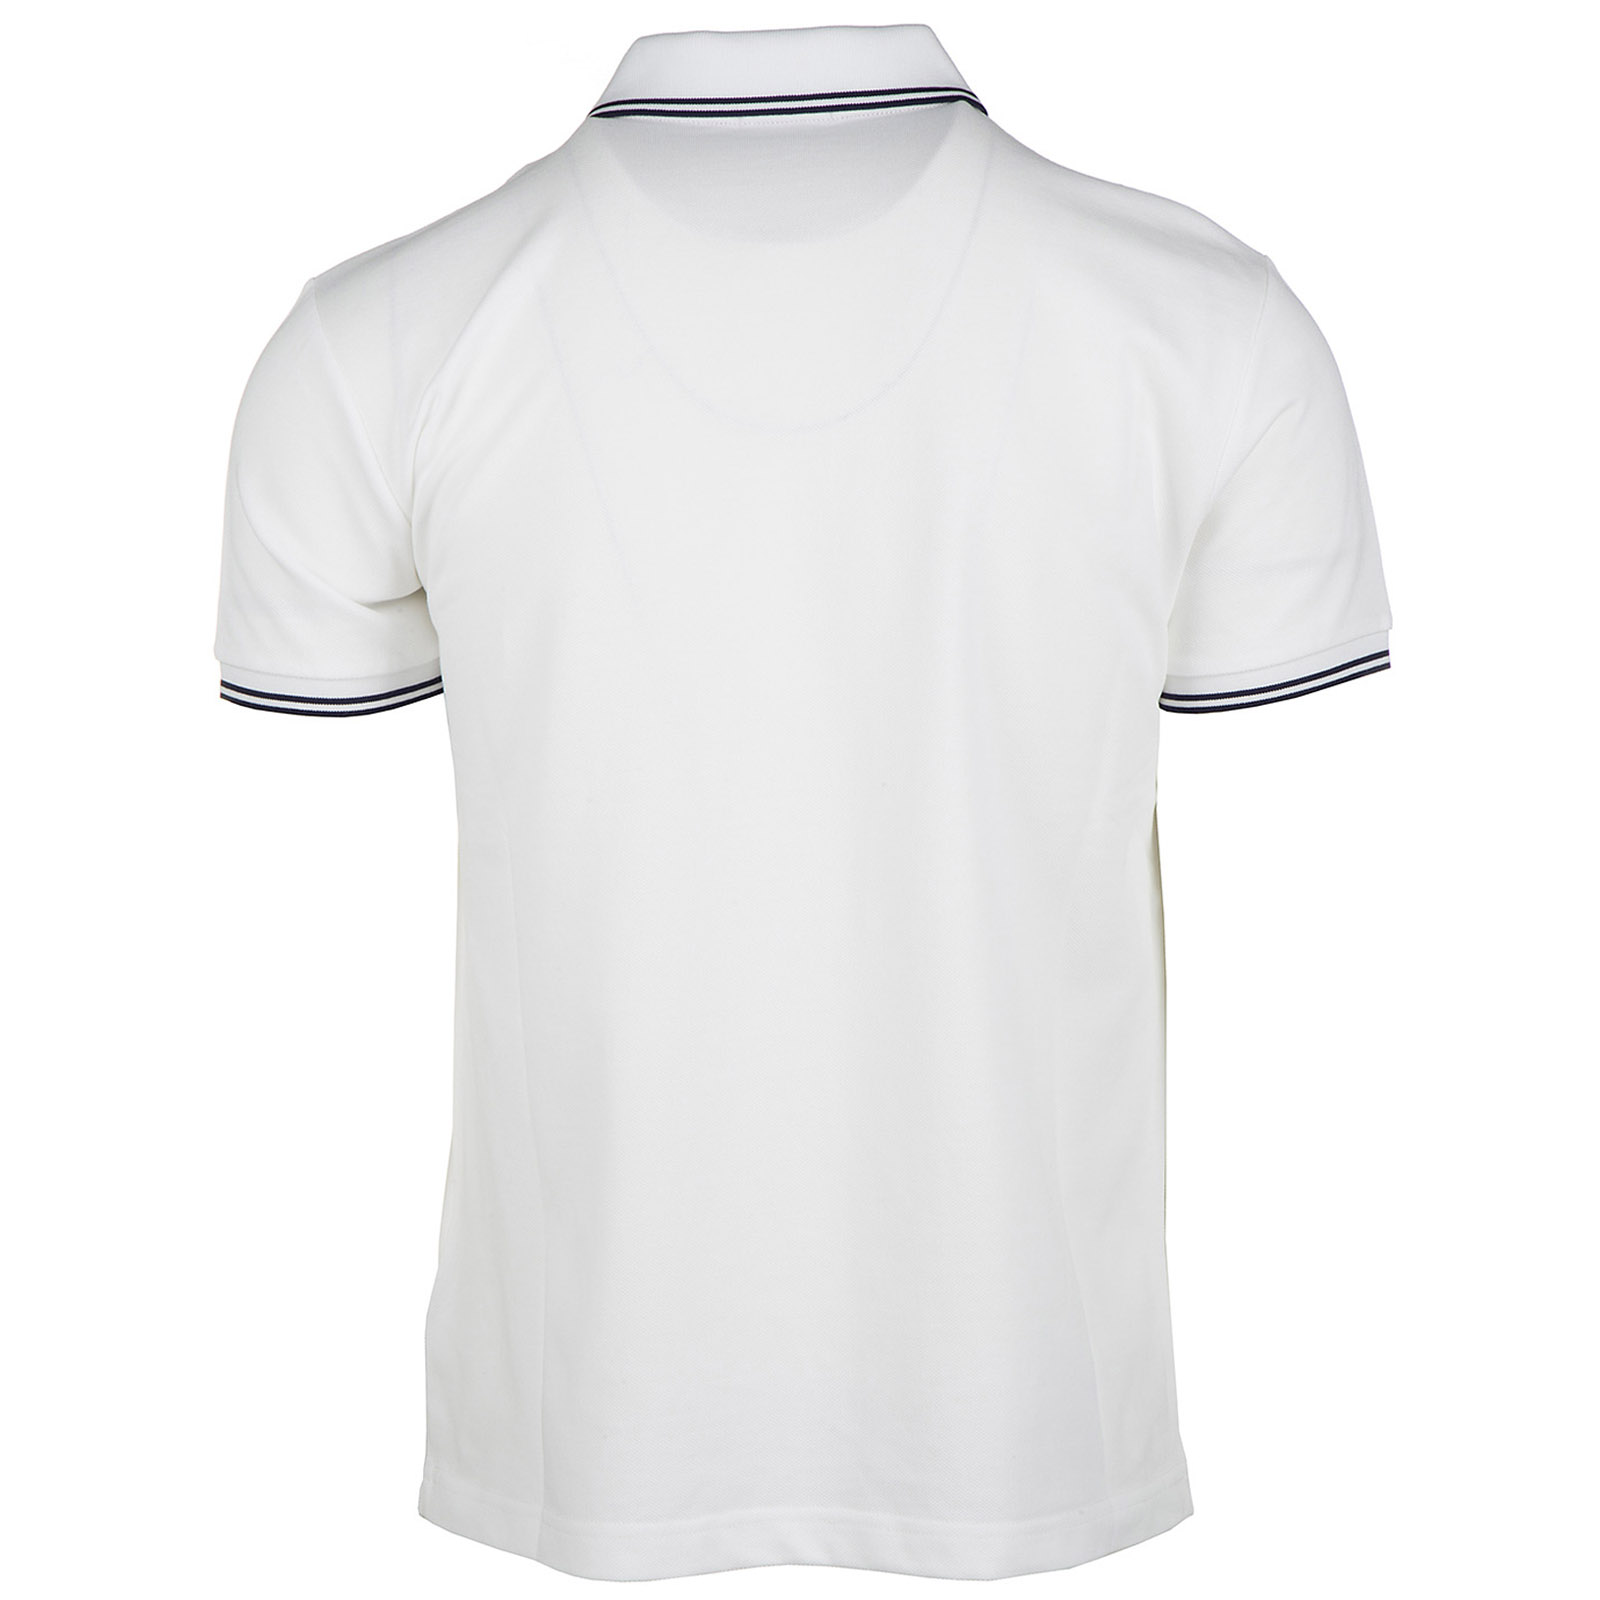 Shirt Polo Collar Short Sleeve T Men's FOwpqUx